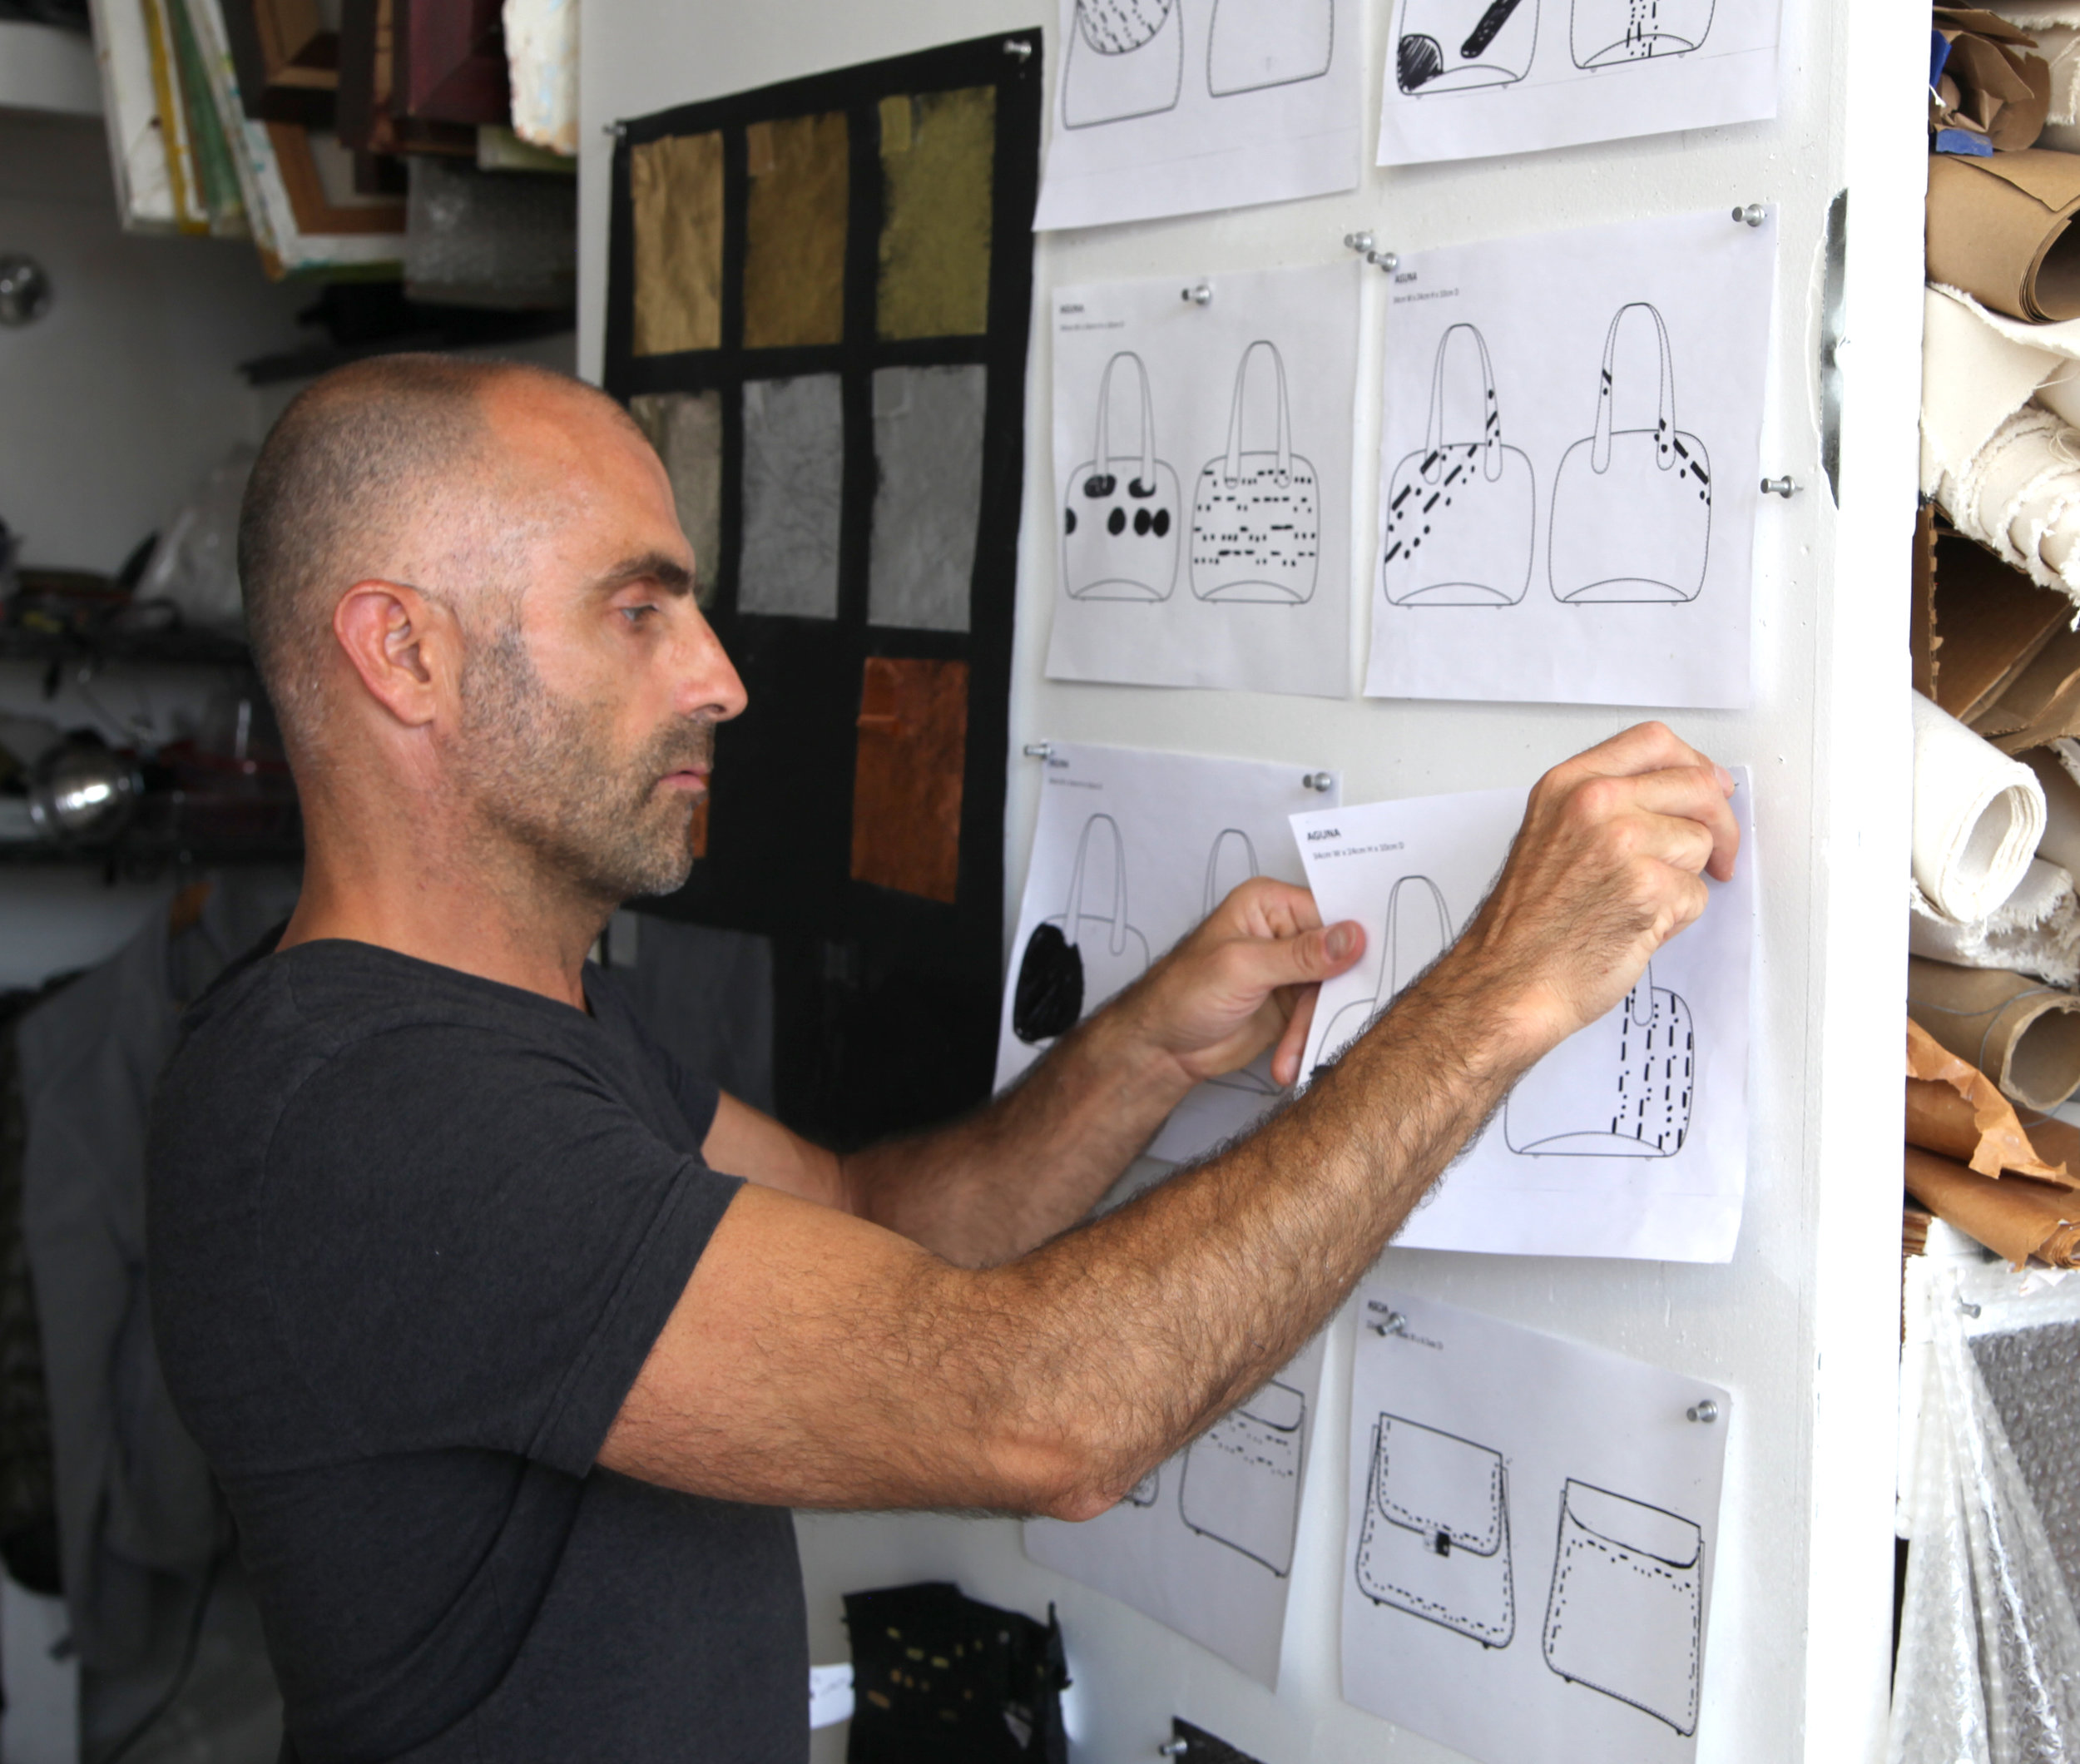 BILL PINNING UP DRAWINGS copy 2.jpg